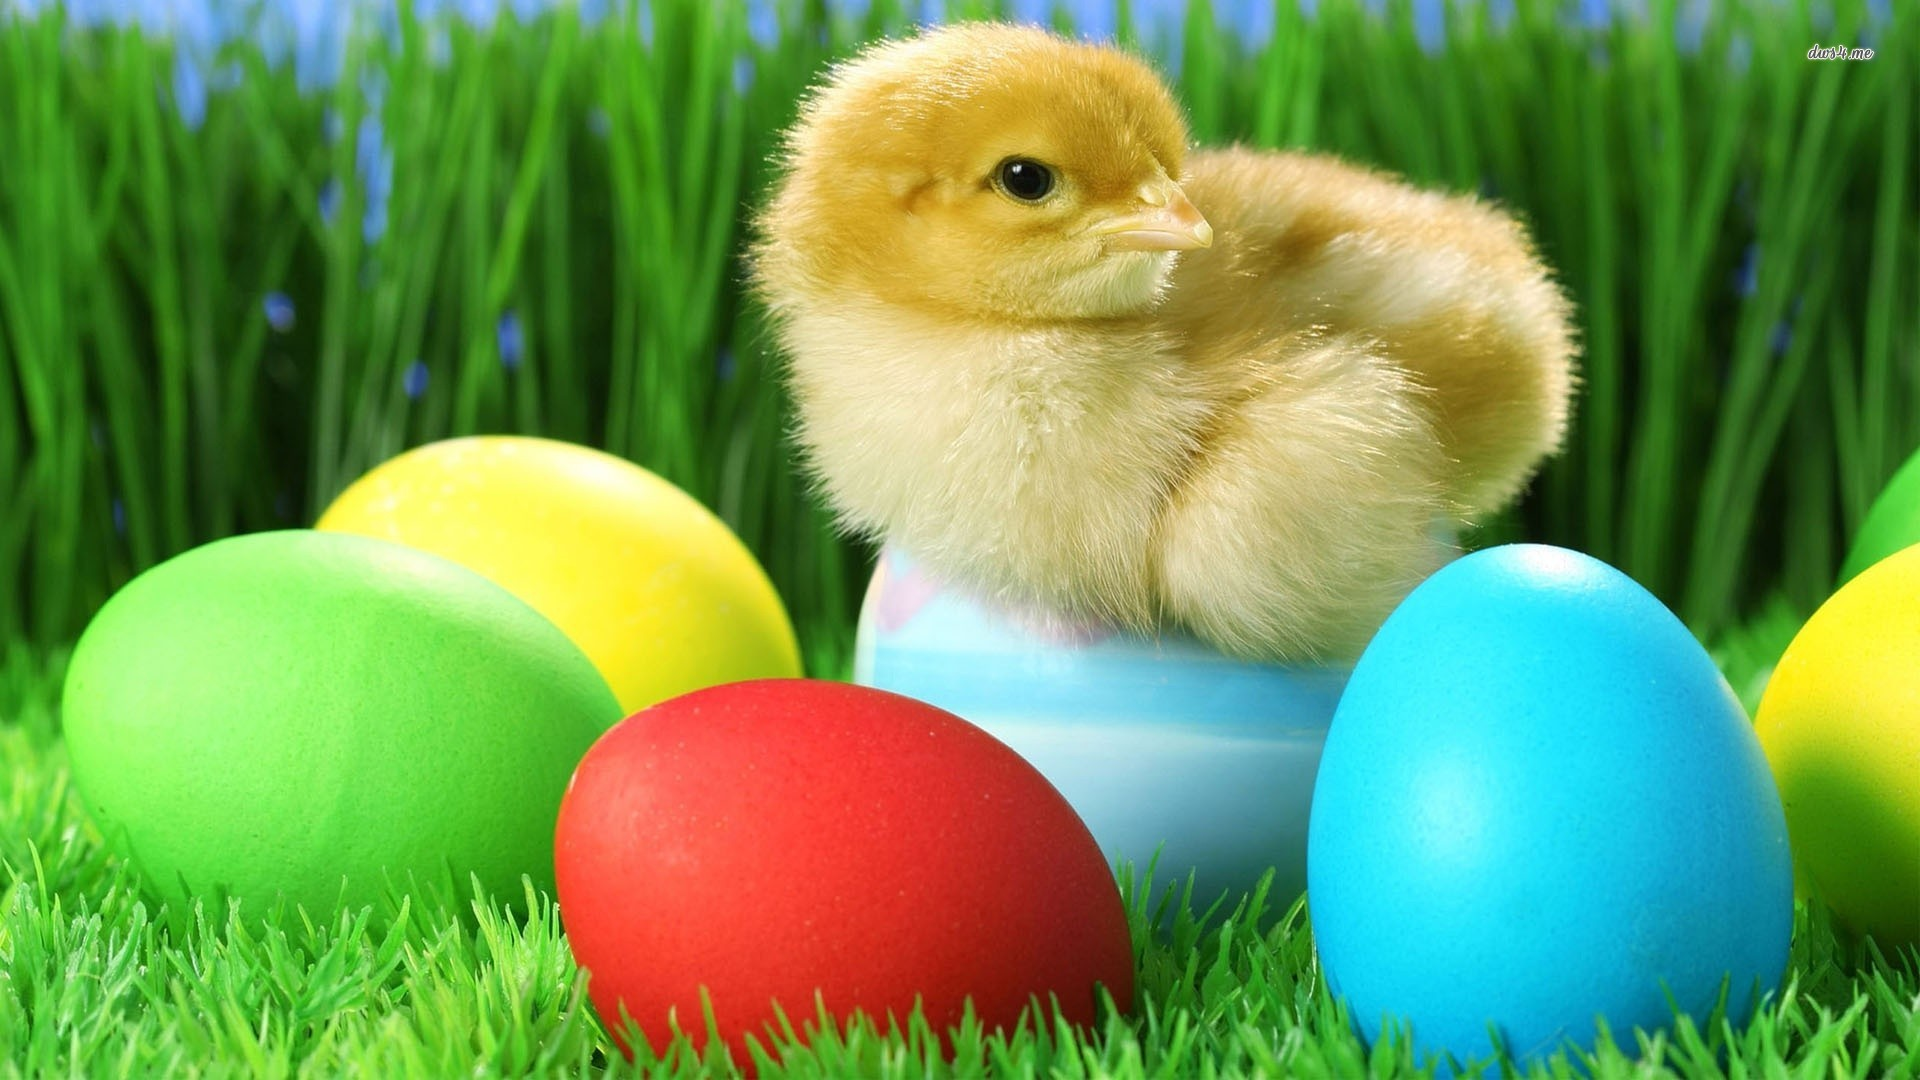 Easter Chick Wallpaper 1920x1080